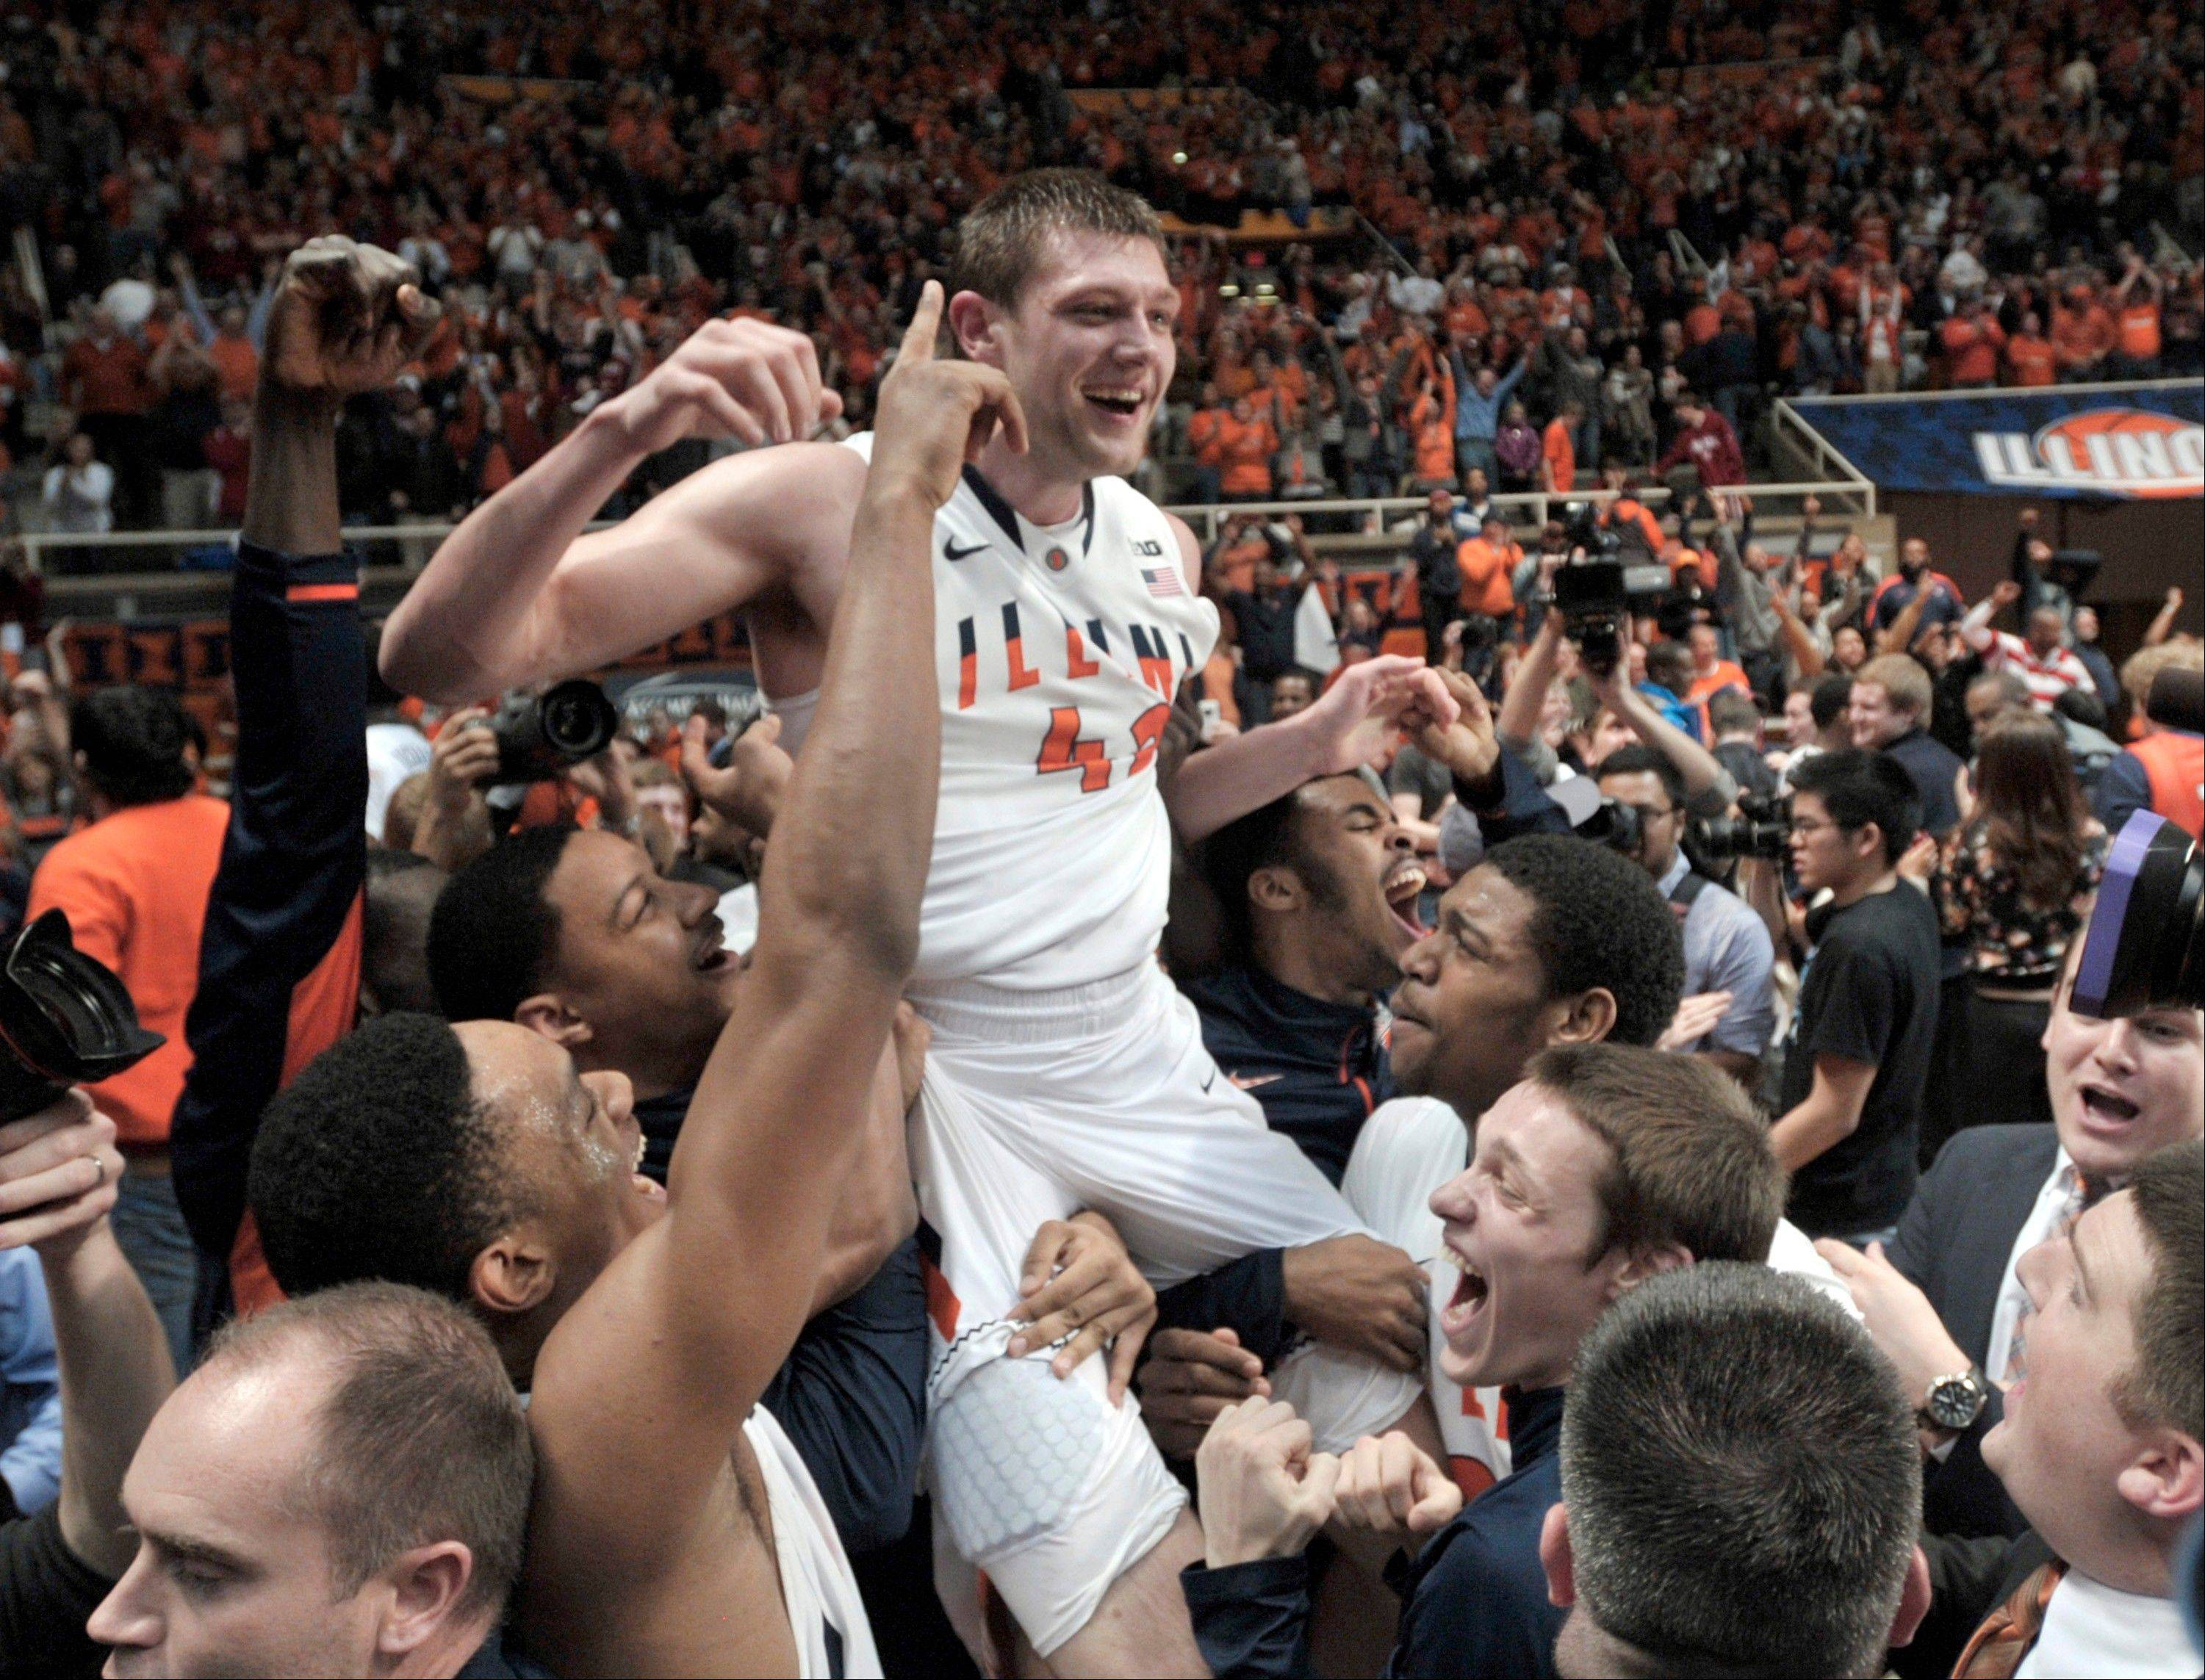 Illinois' Tyler Griffey (42) is hoisted onto his teammates' shoulders after hitting the winning basket, giving Illinois a 74-72 win over No. 1-ranked in an NCAA college basketball game at Assembly Hall in Champaign, Ill., on Thursday Feb. 7, 2013.